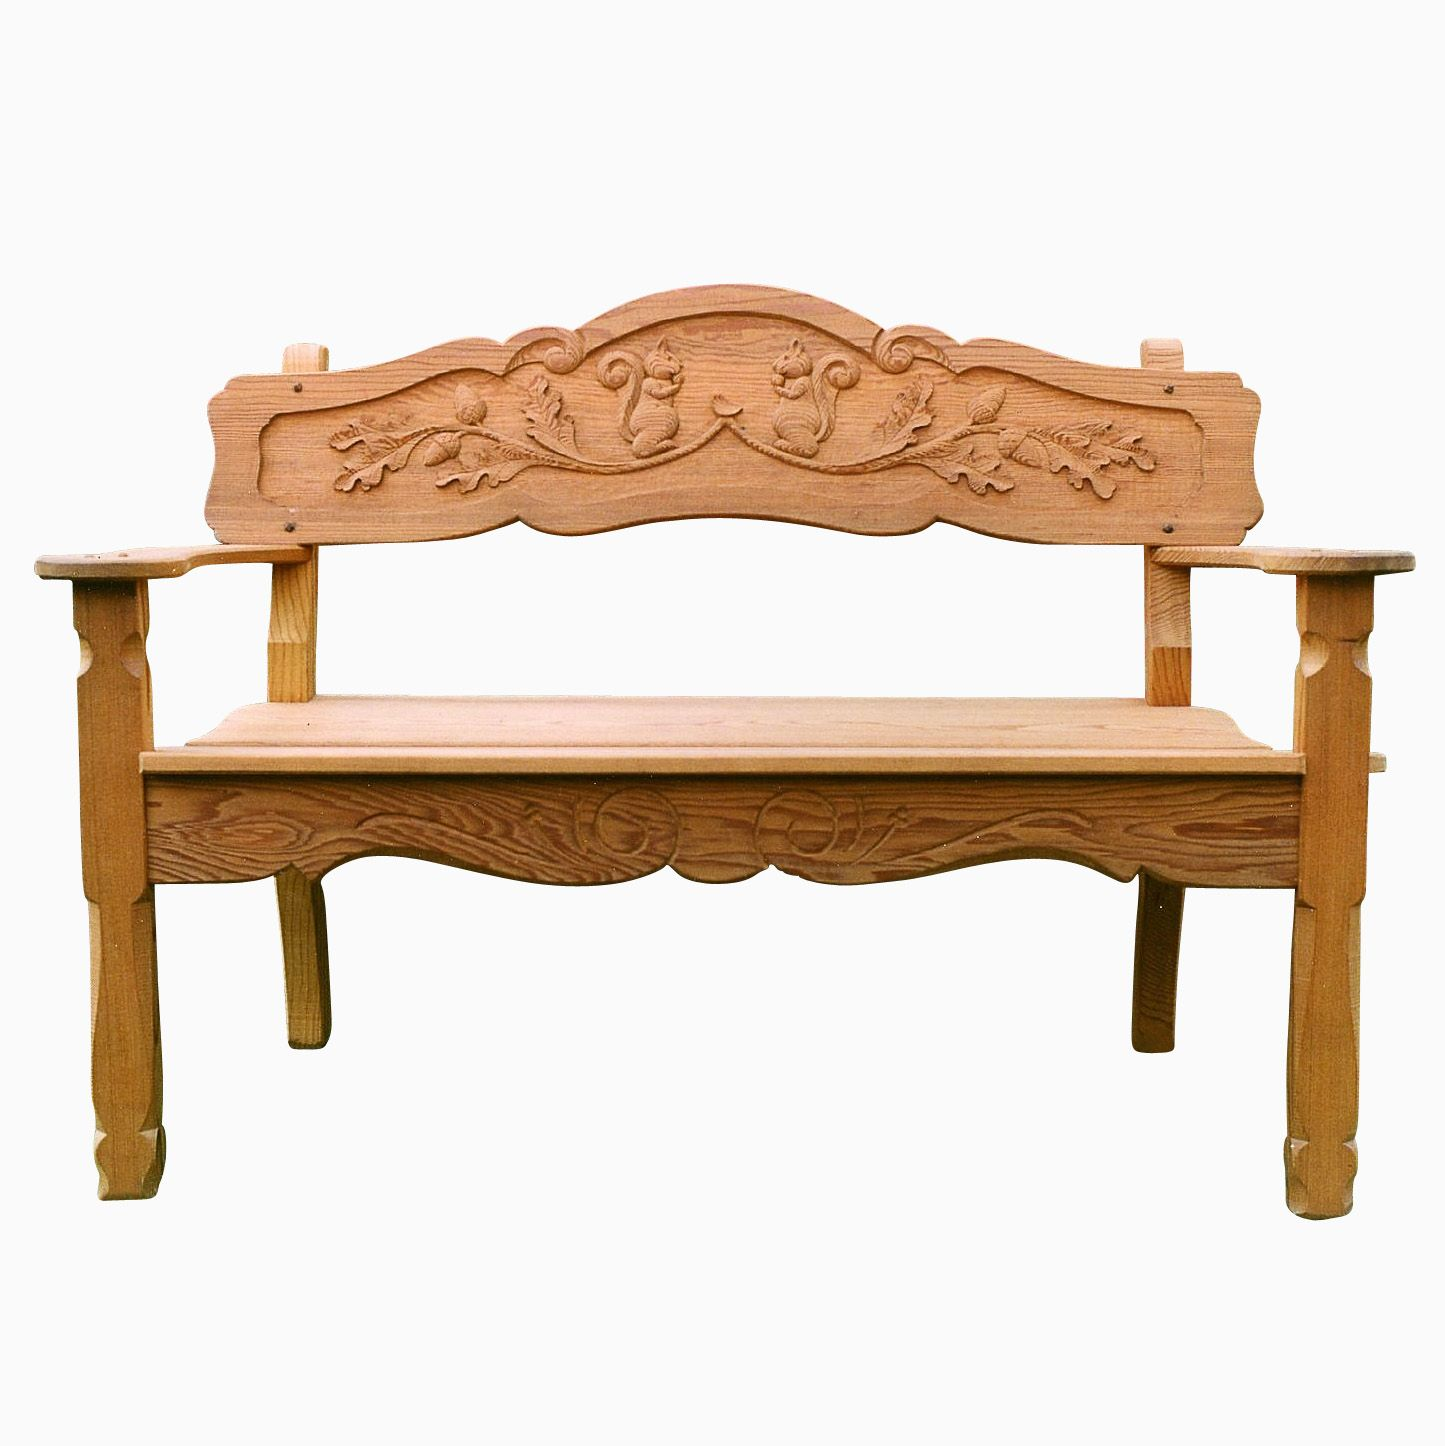 Buy a Hand Made Handcarved Cyprus Or Mahogany Garden Bench ...